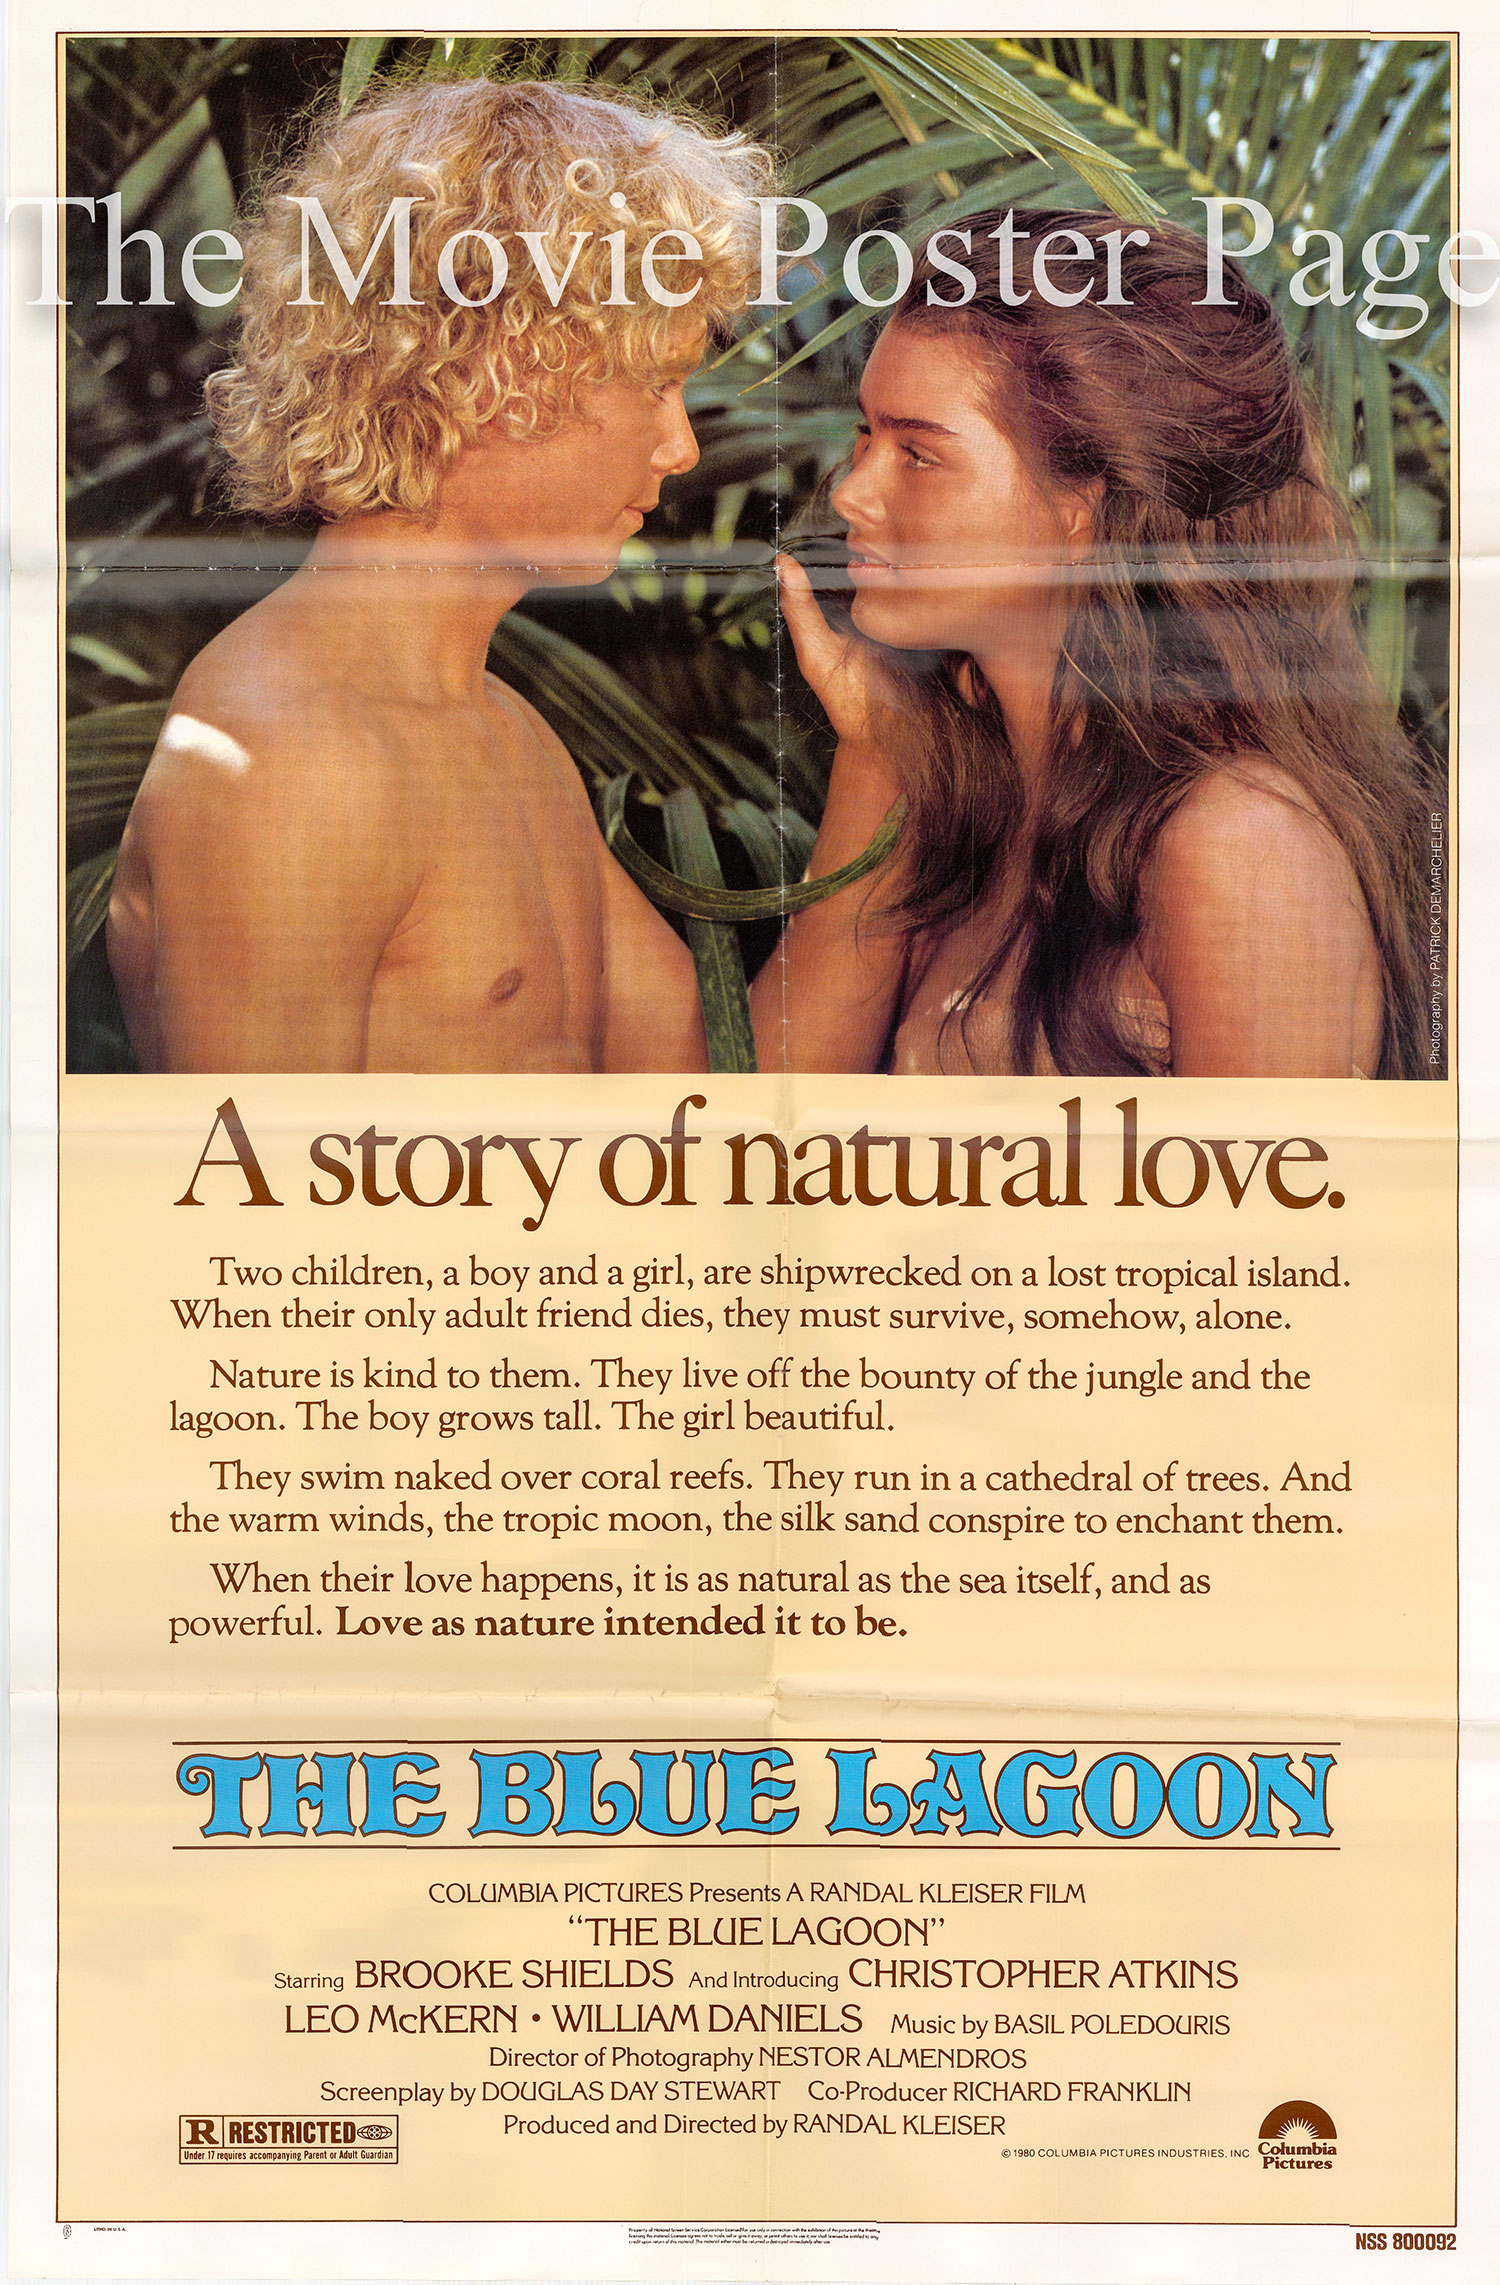 Pictured is a US one-sheet poster for the 1980 Randal Kleiser film B Blue Lagoon starring Brooke Shields as Emmeline.